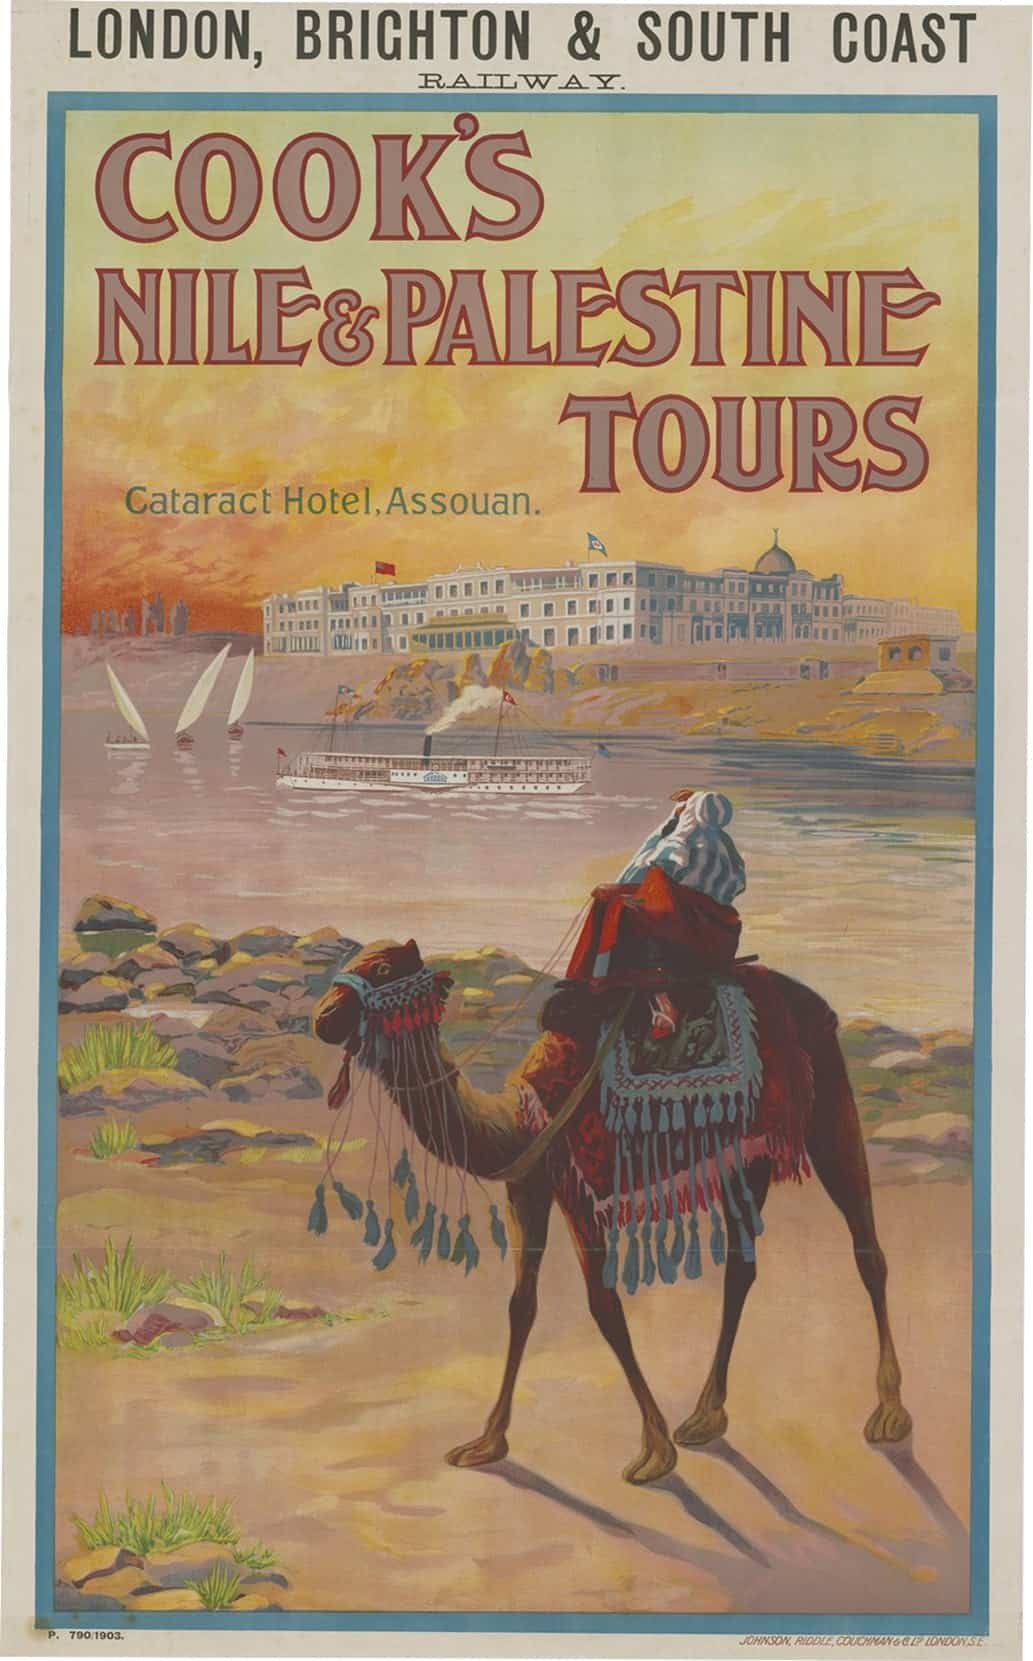 Cook's Nile and Palestine tours poster, featuring the Cataract Hotel on the banks of the Nile in Aswan, Egypt. In the foreground is a man on a camel.